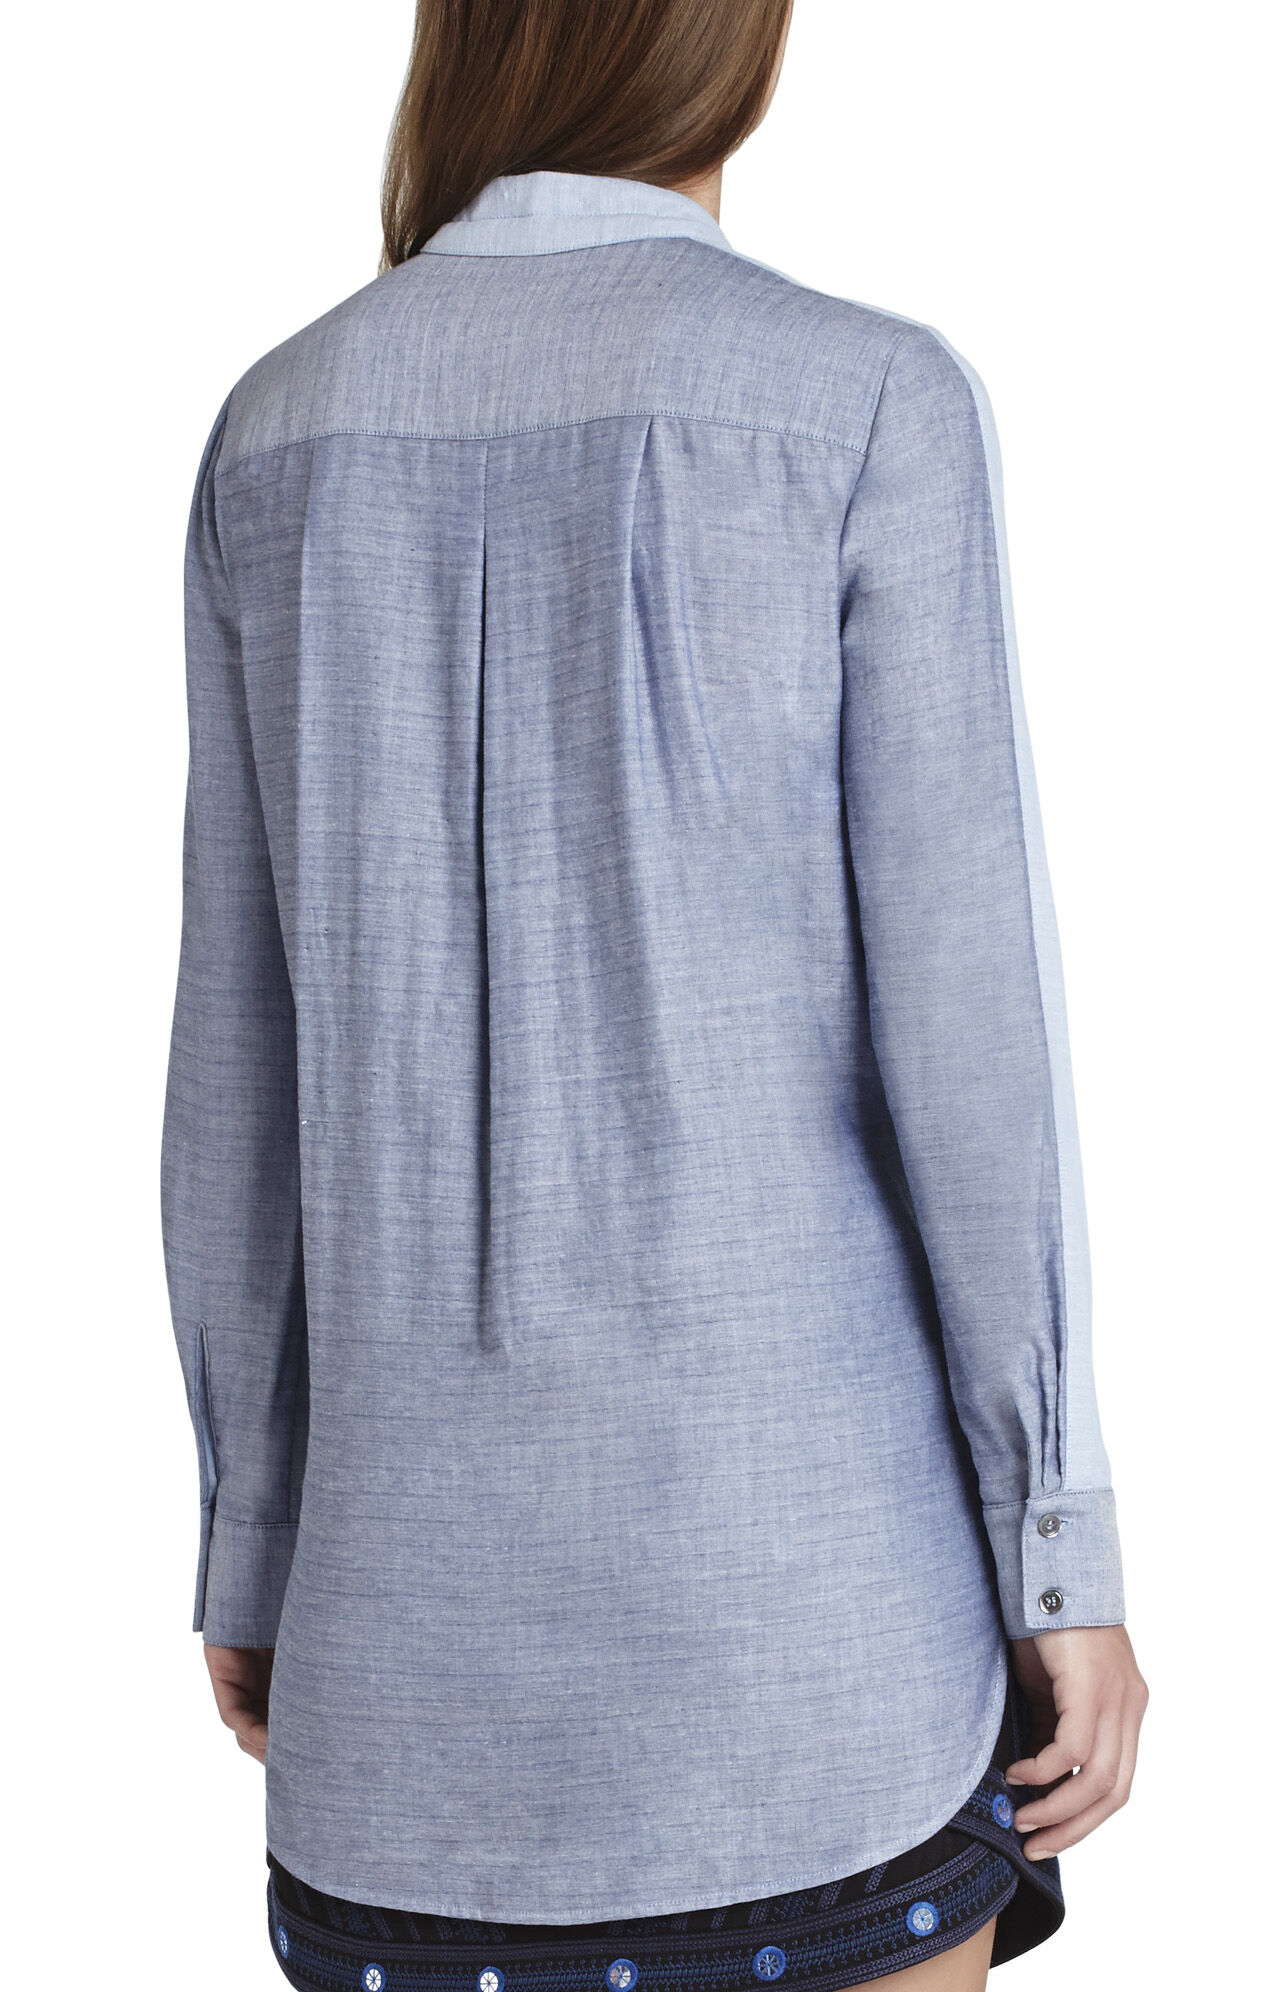 Sidnee Long-Sleeve Stitched-Collar Shirt